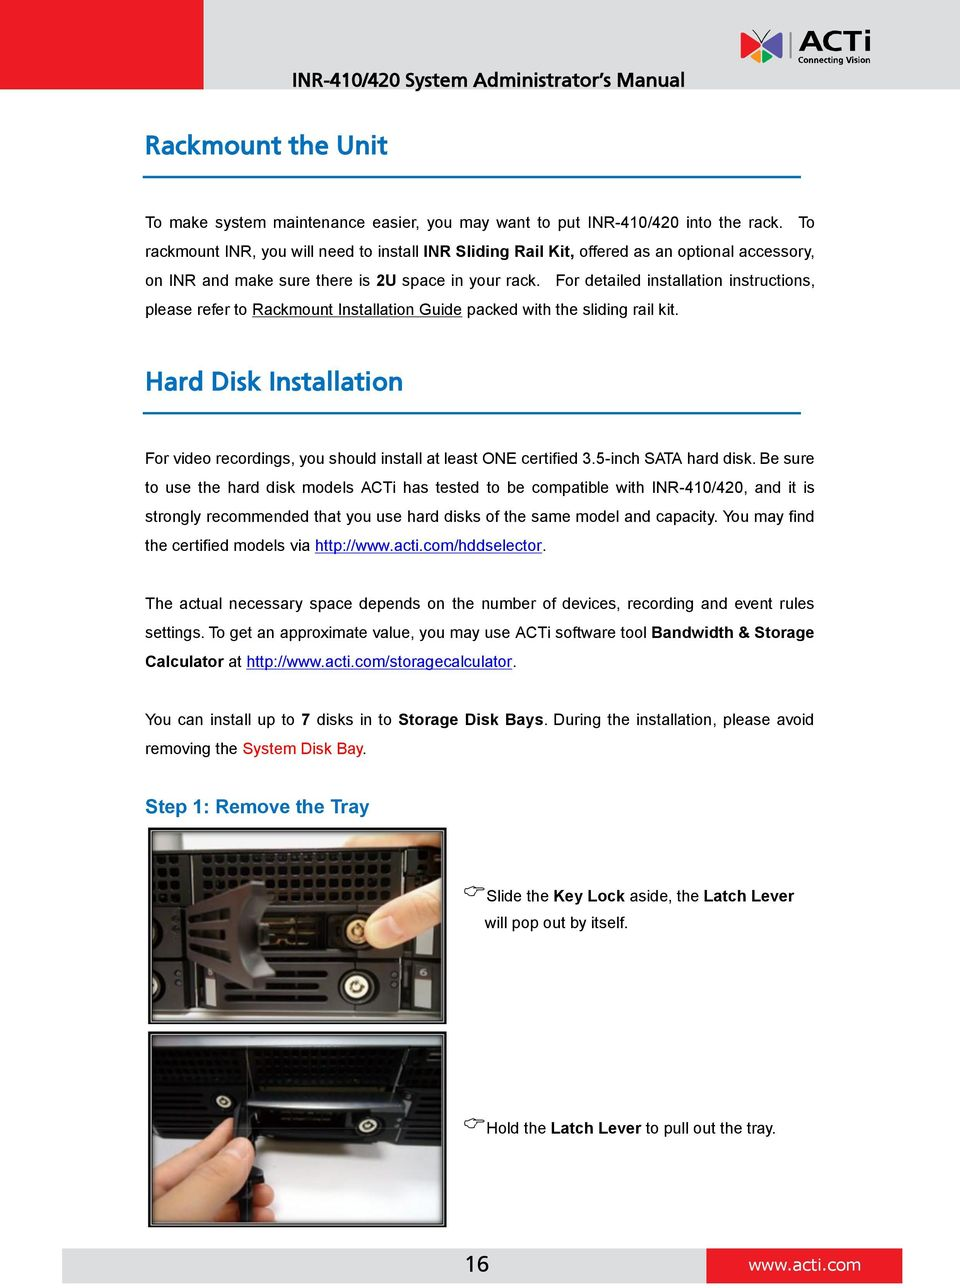 For detailed installation instructions, please refer to Rackmount Installation Guide packed with the sliding rail kit.